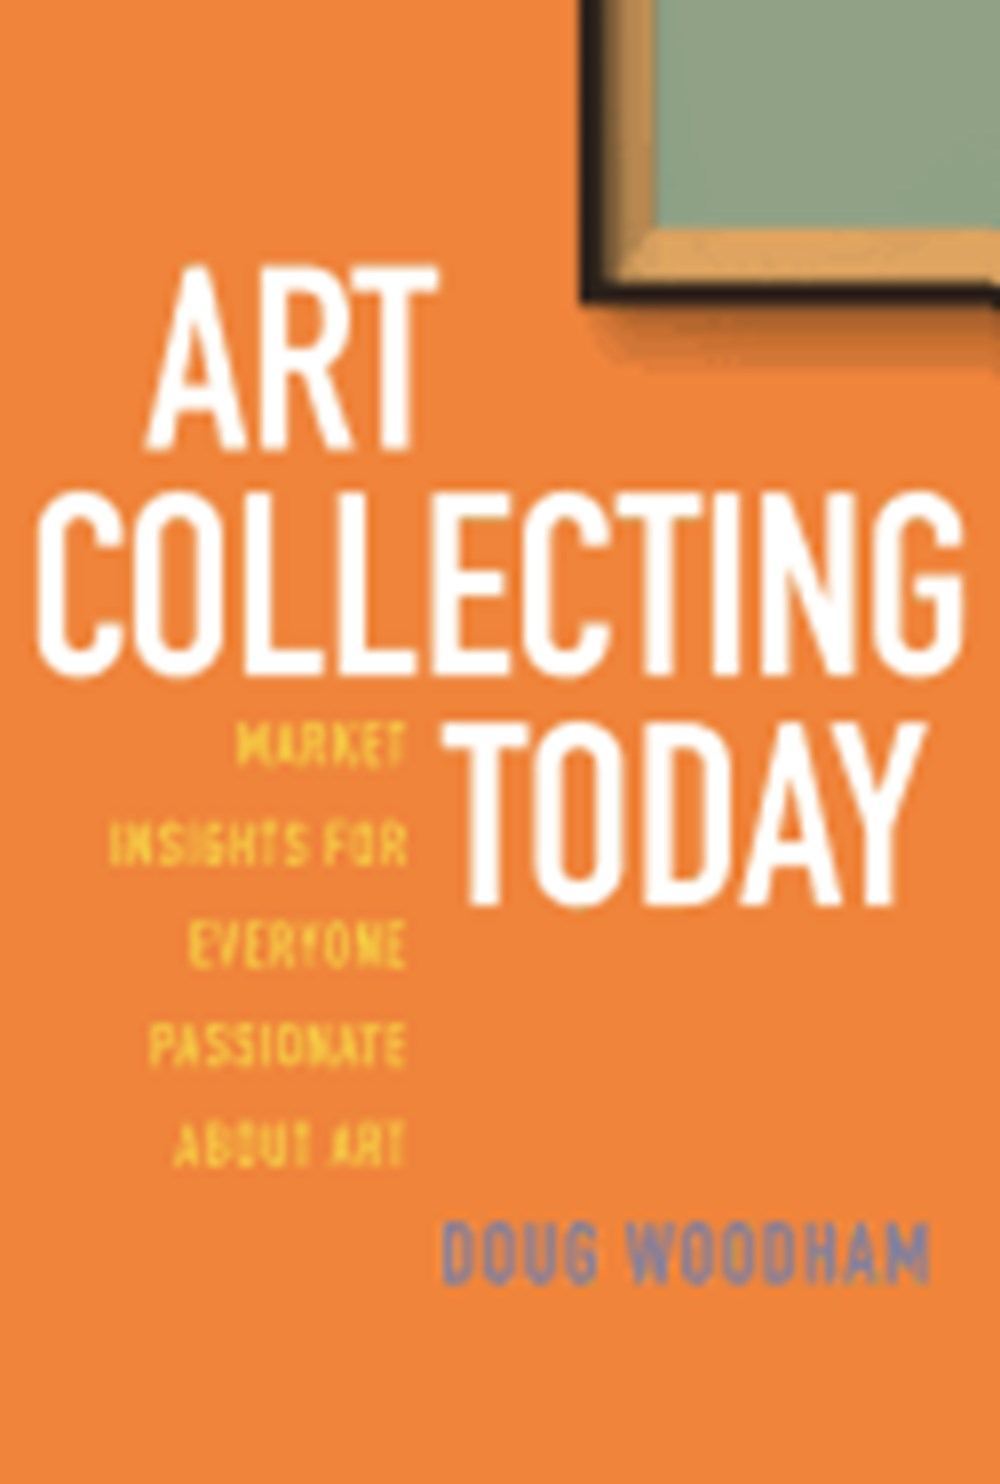 Art Collecting Today Market Insights for Everyone Passionate about Art